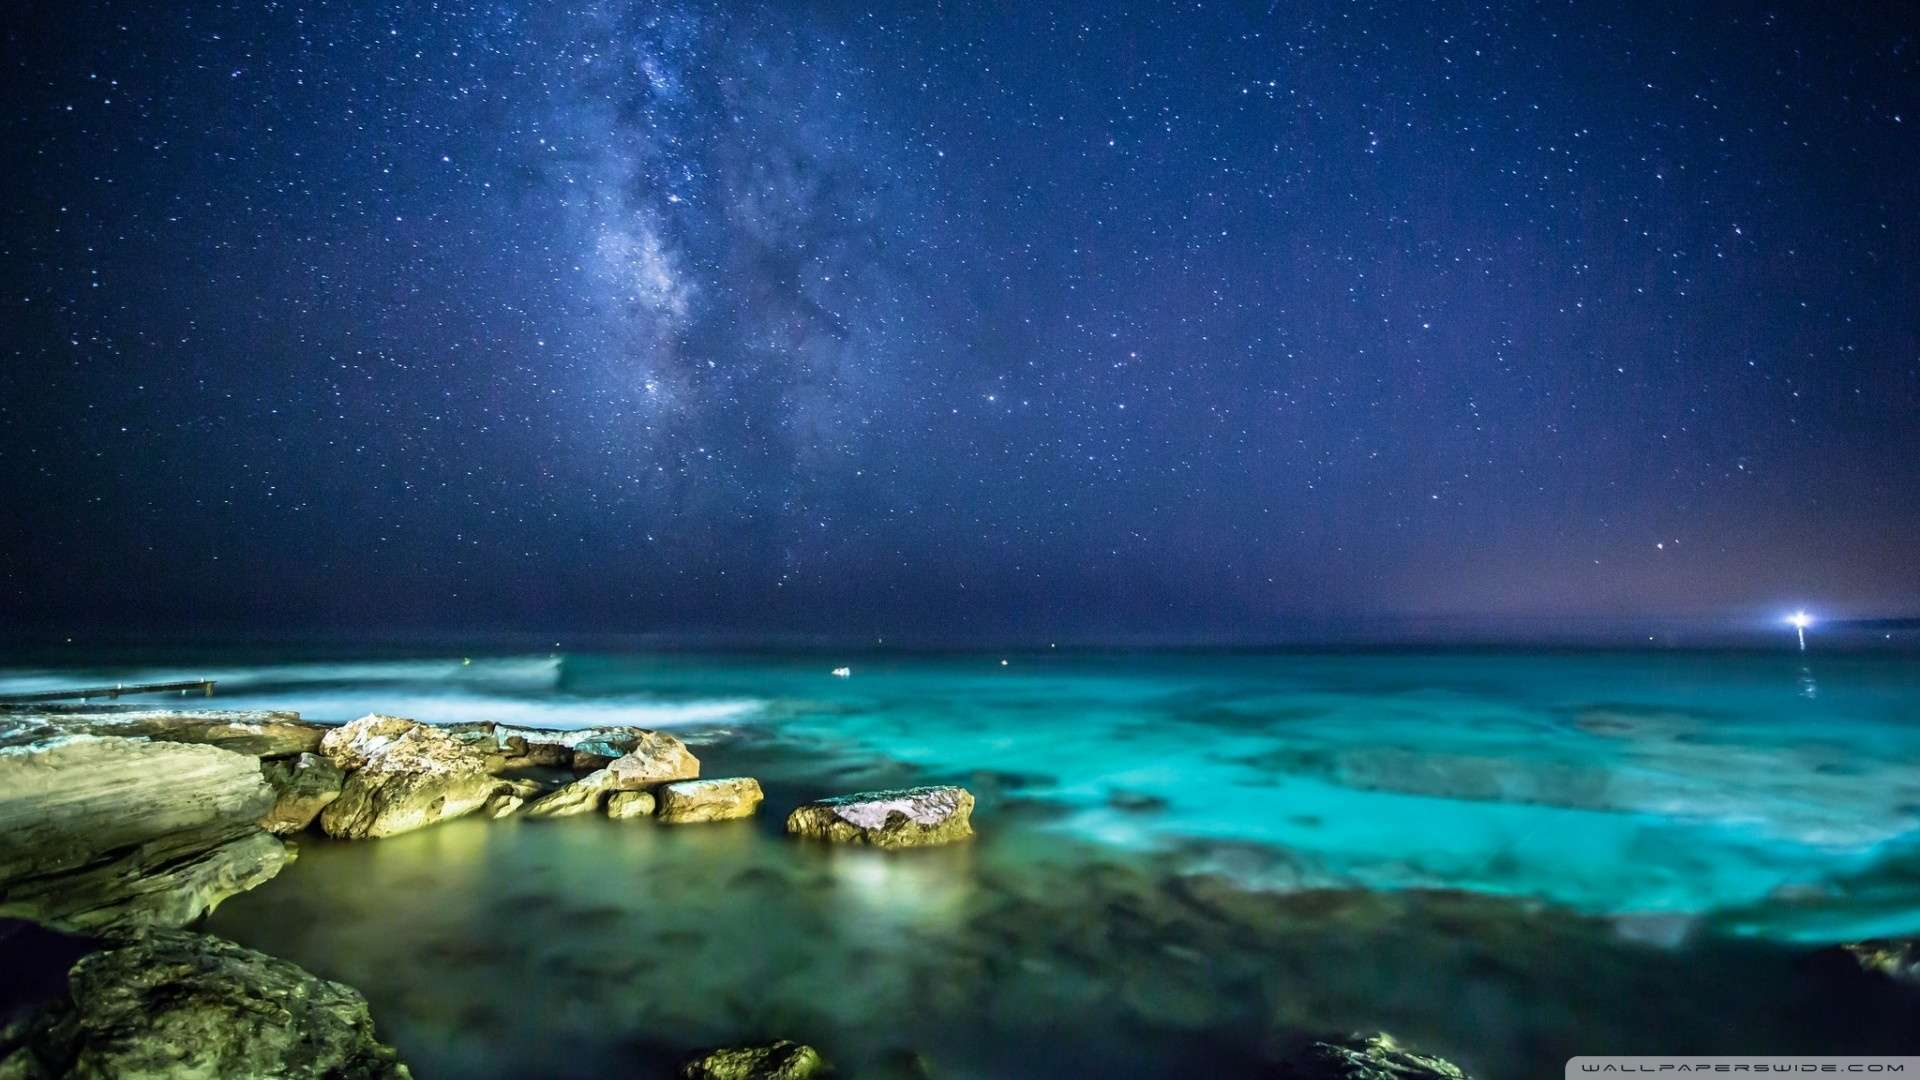 Night Ocean Wallpaper Hd Wallpaper ocean night sky 1920x1080